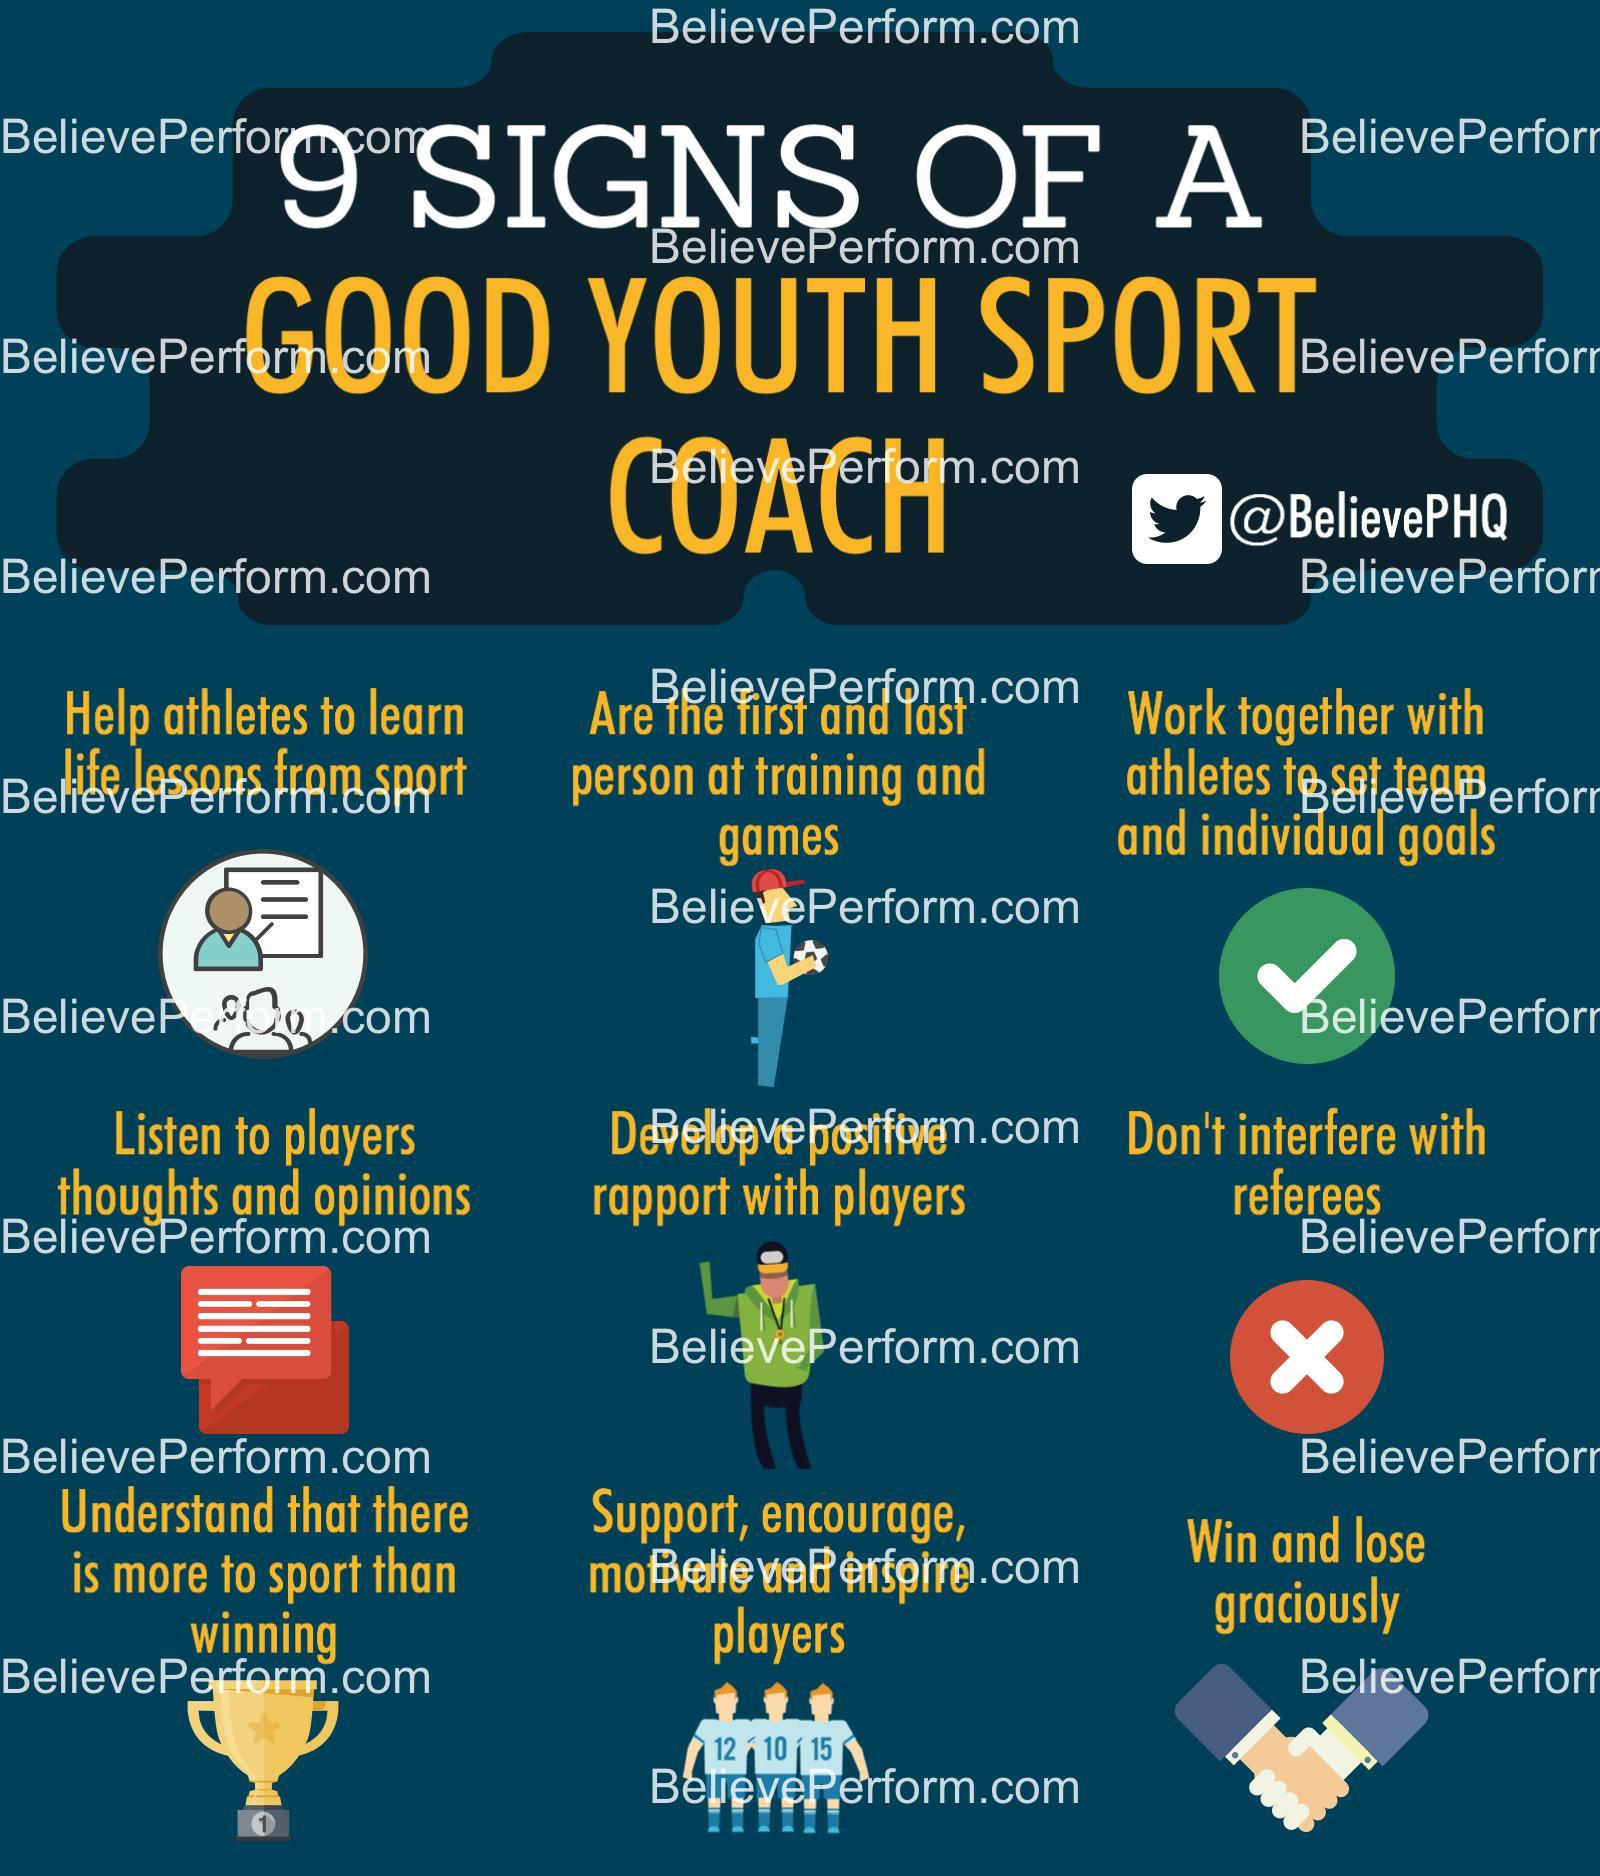 9 signs of a good youth sport coach